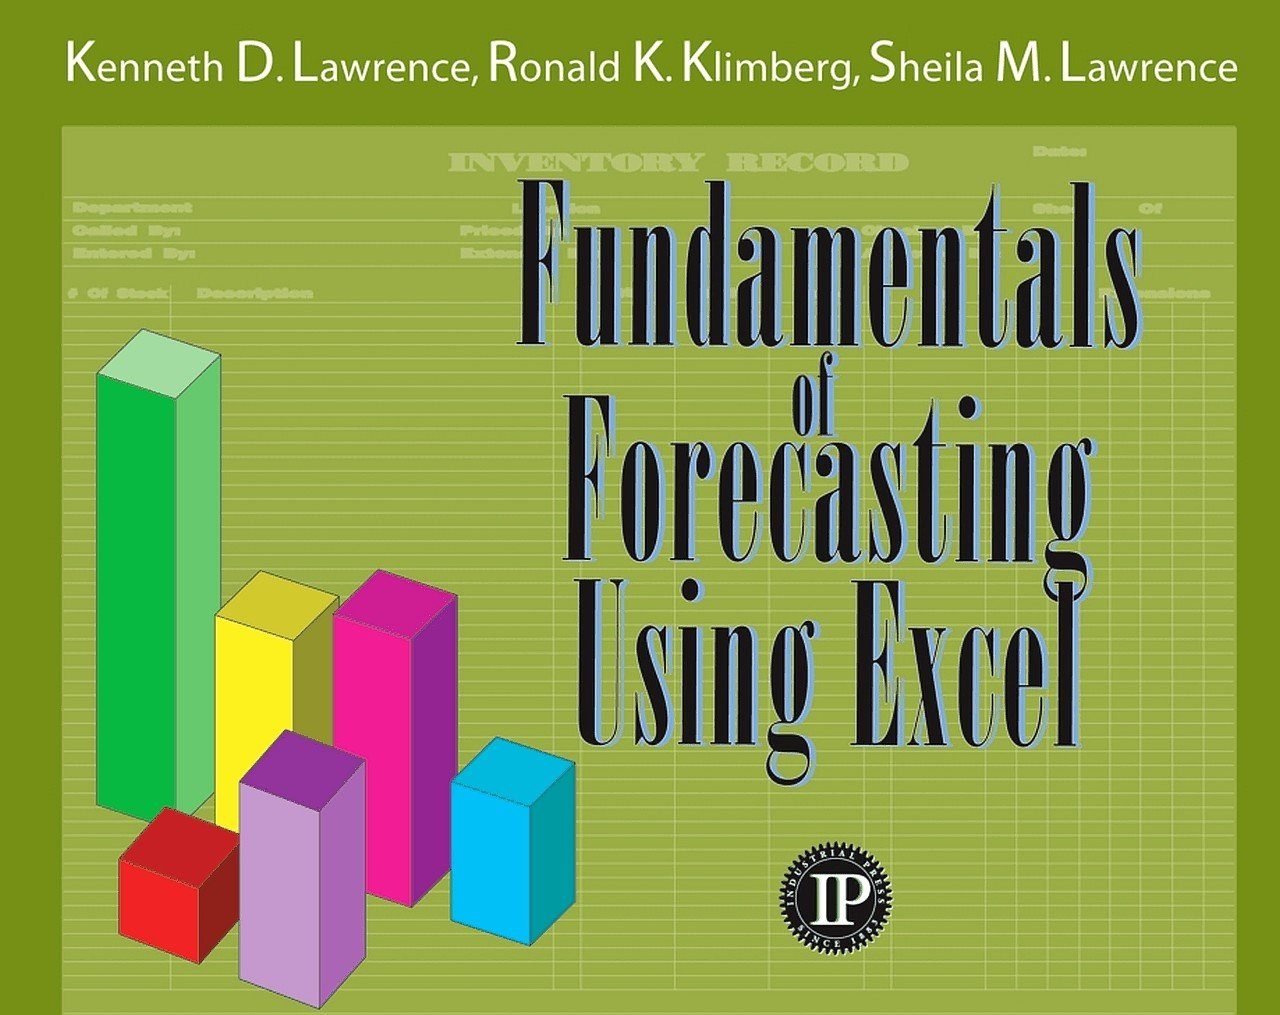 Buy Fundamentals Of Forecasting Using Excel Book Online At Low Prices In  India  Fundamentals Of Forecasting Using Excel Reviews & Ratings   Amazon